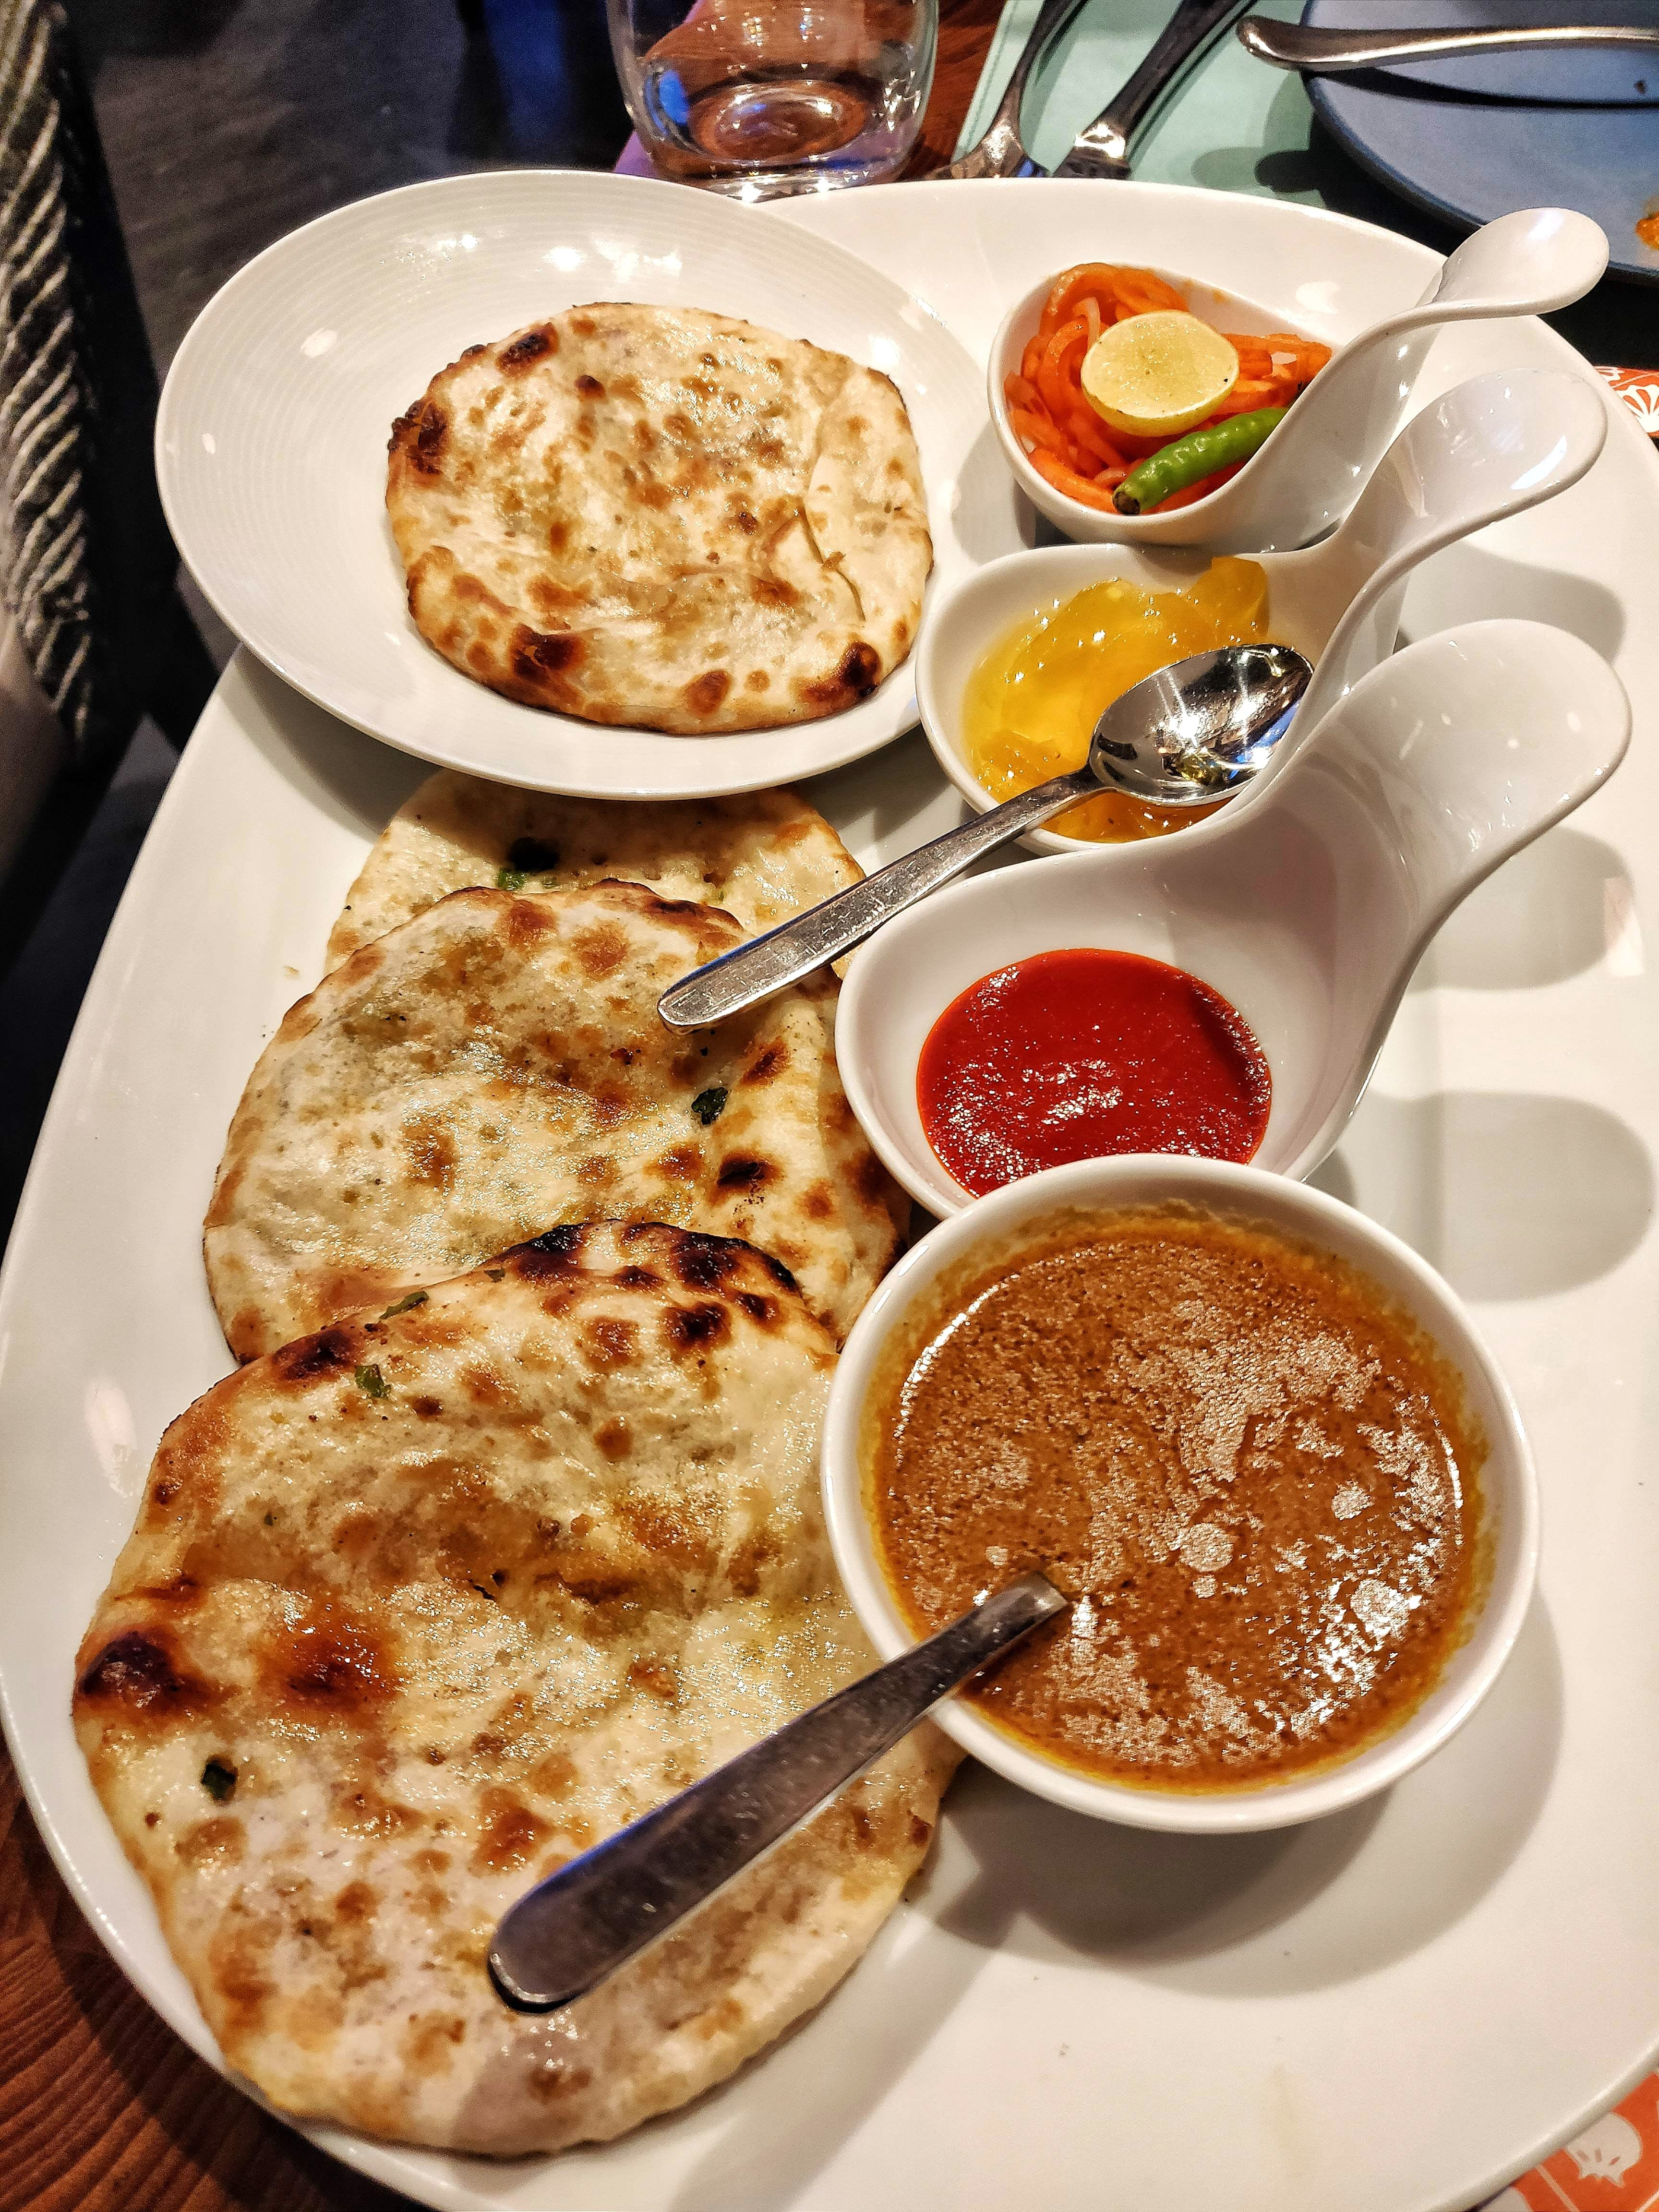 Dish,Food,Cuisine,Naan,Ingredient,Roti canai,Meal,Brunch,Flatbread,Paratha